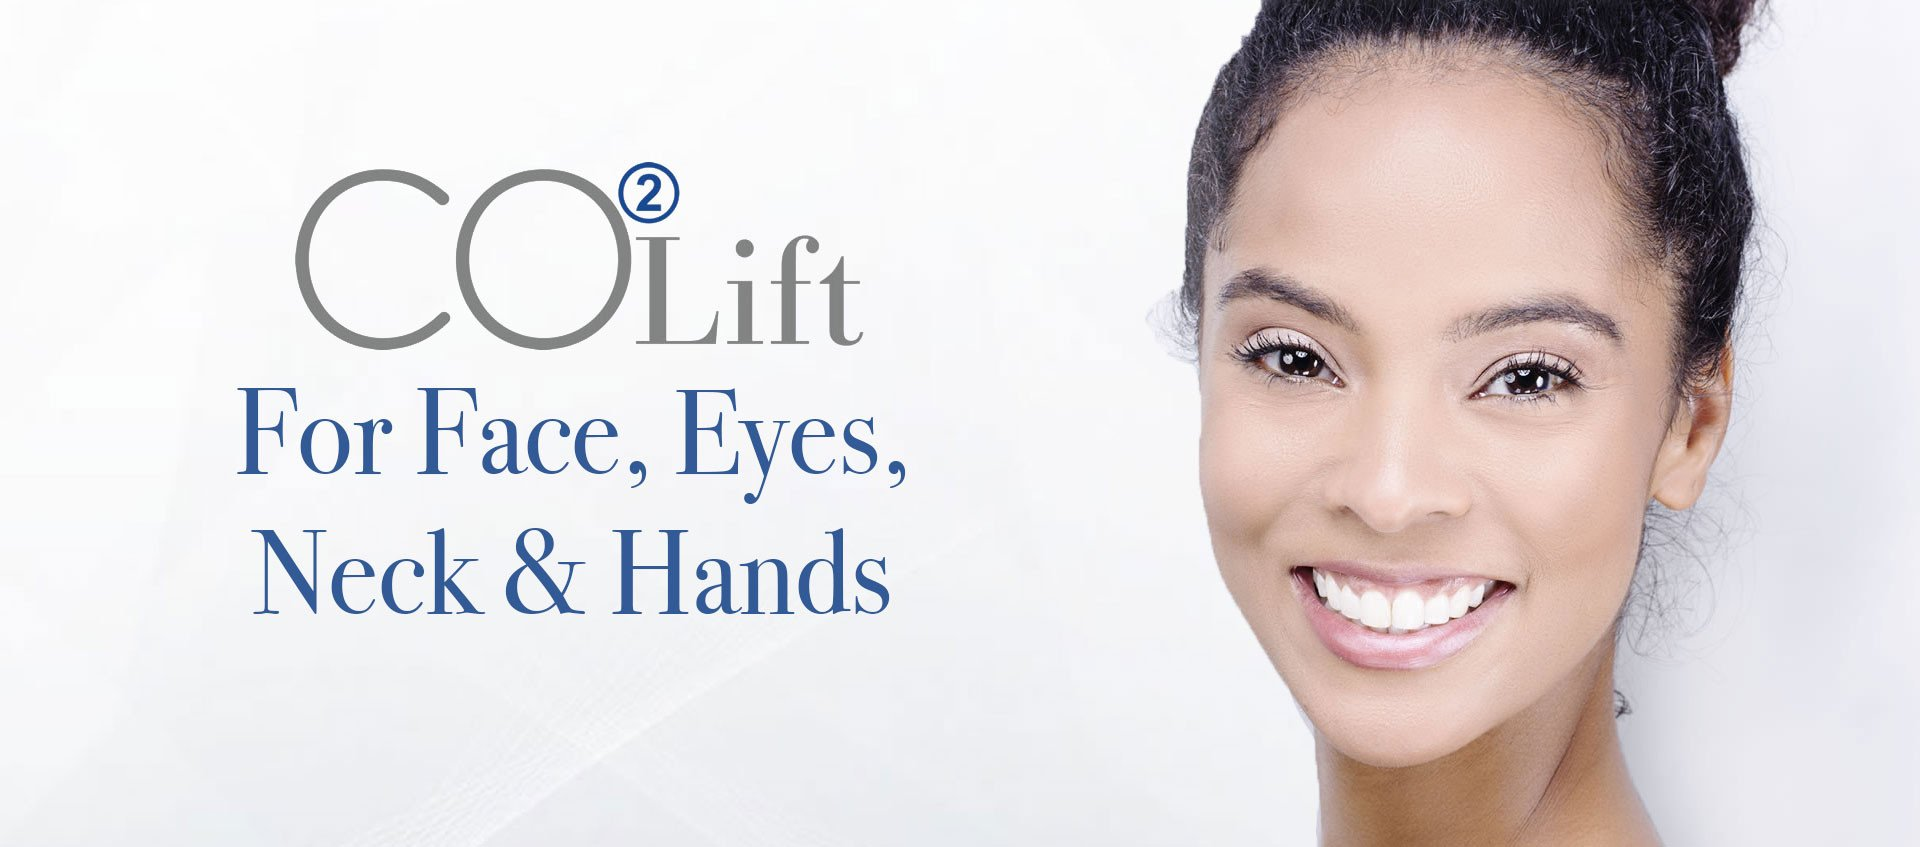 CO2Lift: For Face, Eyes, Neck & Hands